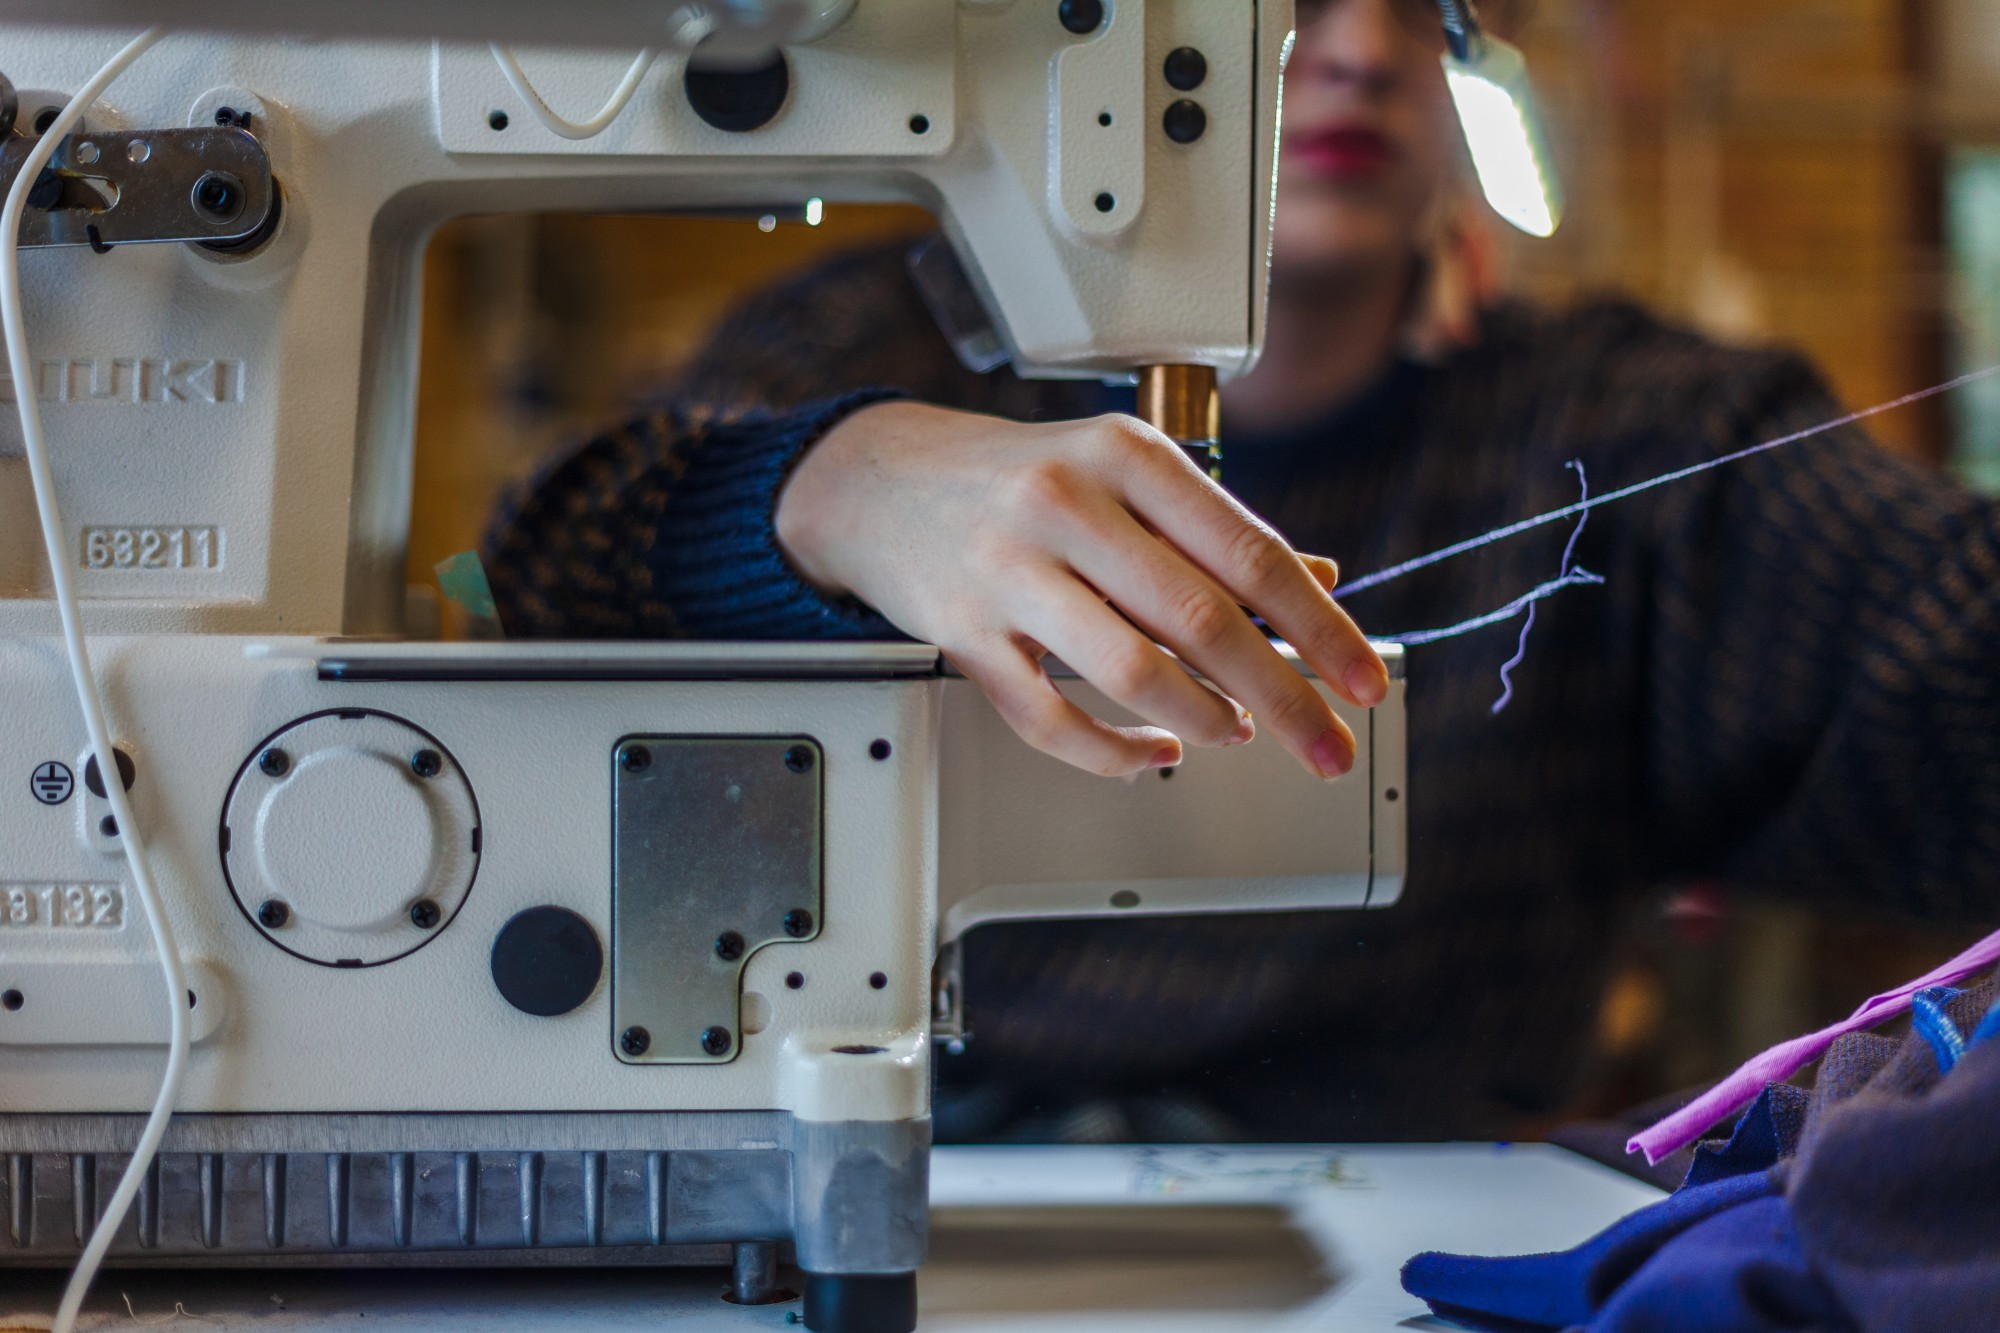 Britt, who is seen threading a sewing machine, has benefitted from the technical expertise she has gained while attending the University of Minnesota.